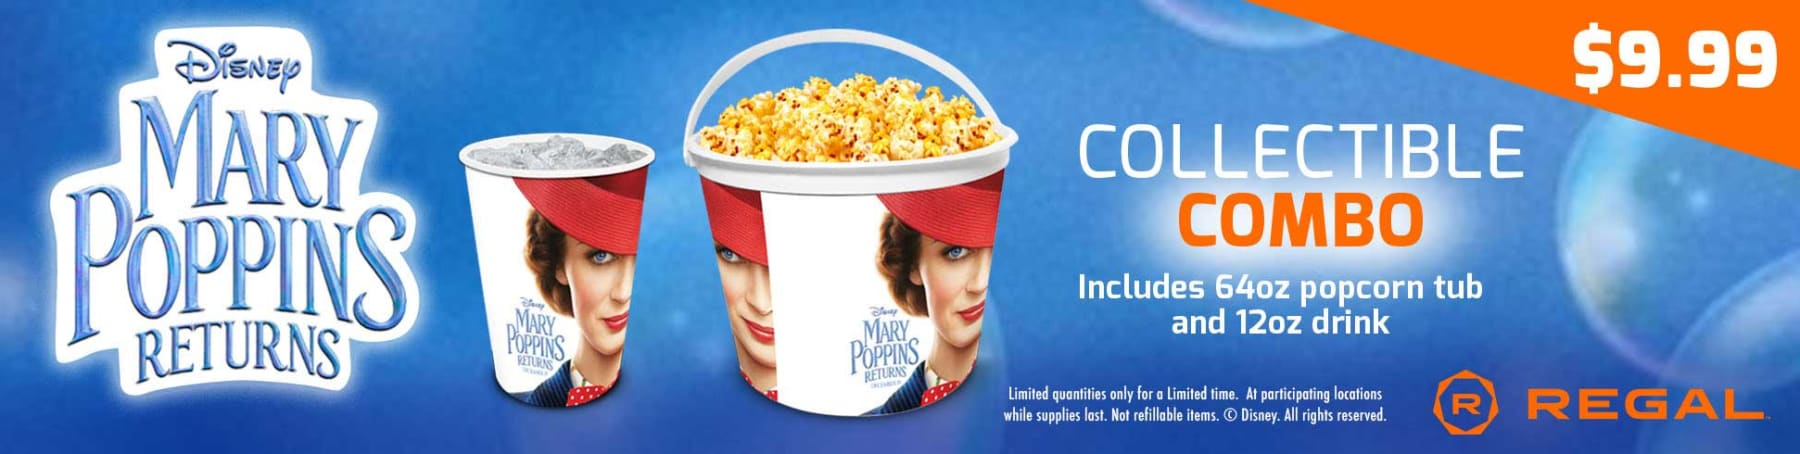 Mary Poppins Returns Collectible Combo Only $9.99 - Includes 64oz Collectible Popcorn tub & 12 oz. drink with cup.